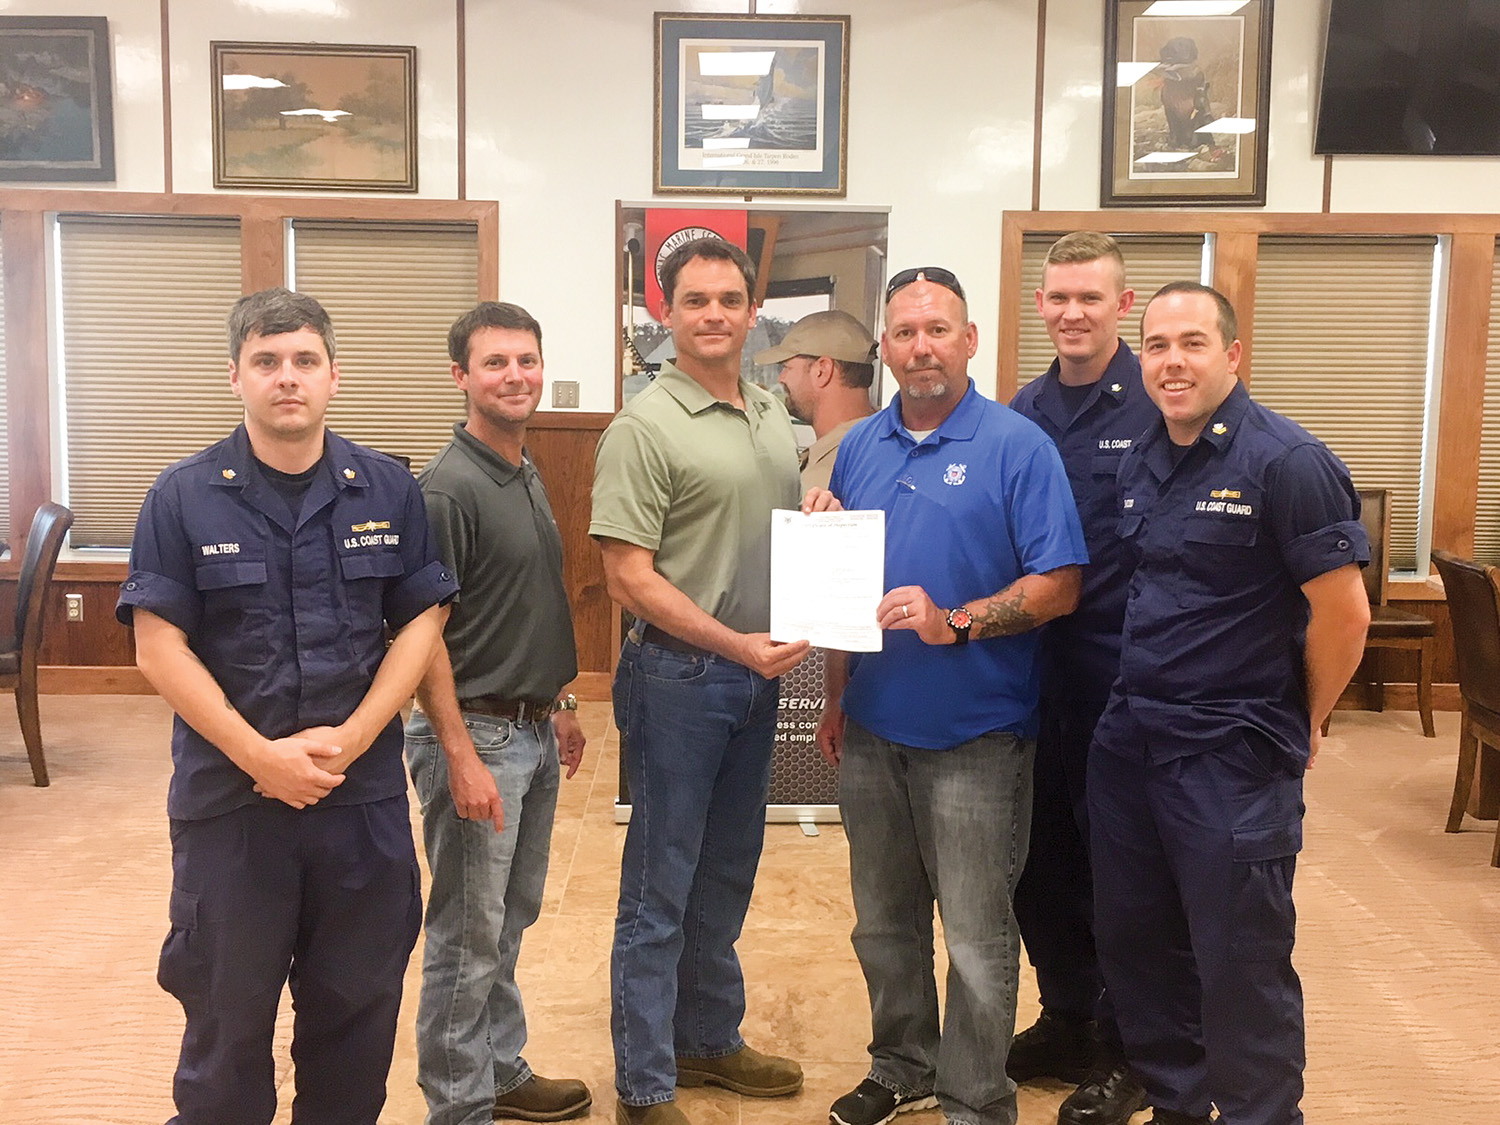 From left are: Coast Guard Petty Officer Andrew Walters; Cenac Compliance Manager Dustin Walker, Cenac Safety Manager Tim Moore; Jeff Scott, also with Cenac; Coast Guard Petty Officer Joshua Mull and Coast Guard Petty Officer Cory Basso.